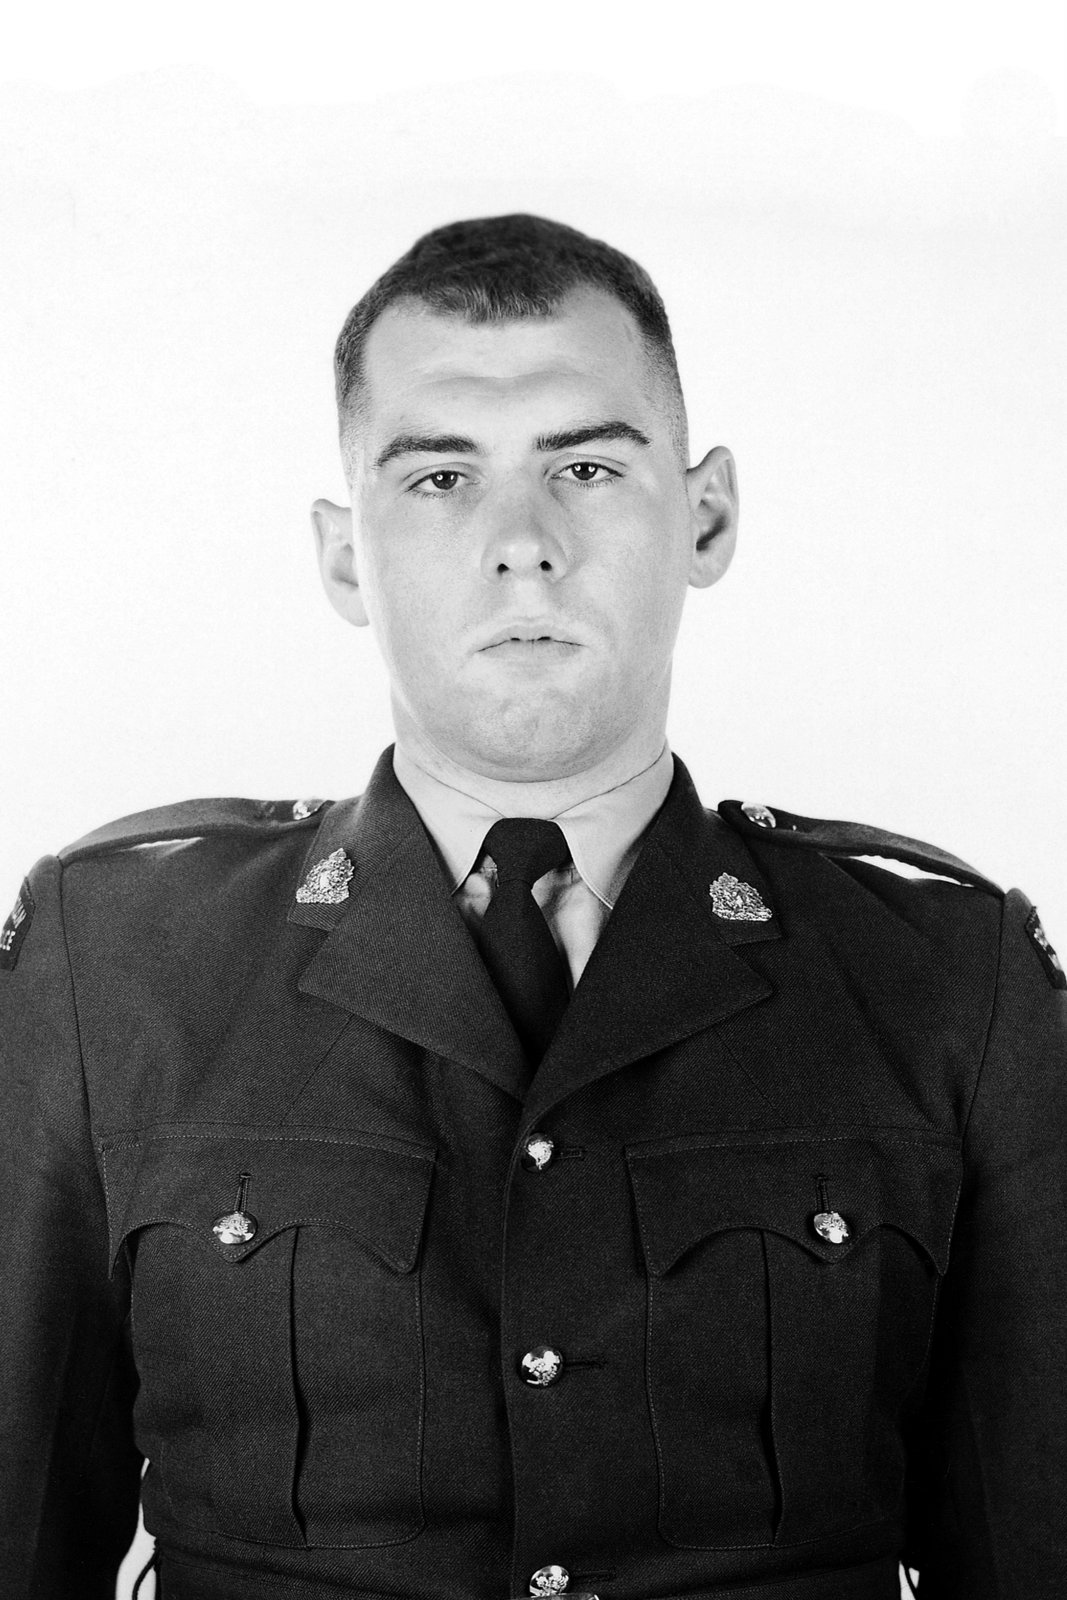 Third Class Constable Reginald Wayne Williams– © Her Majesty the Queen in Right of Canada as represented by the Royal Canadian Mounted Police